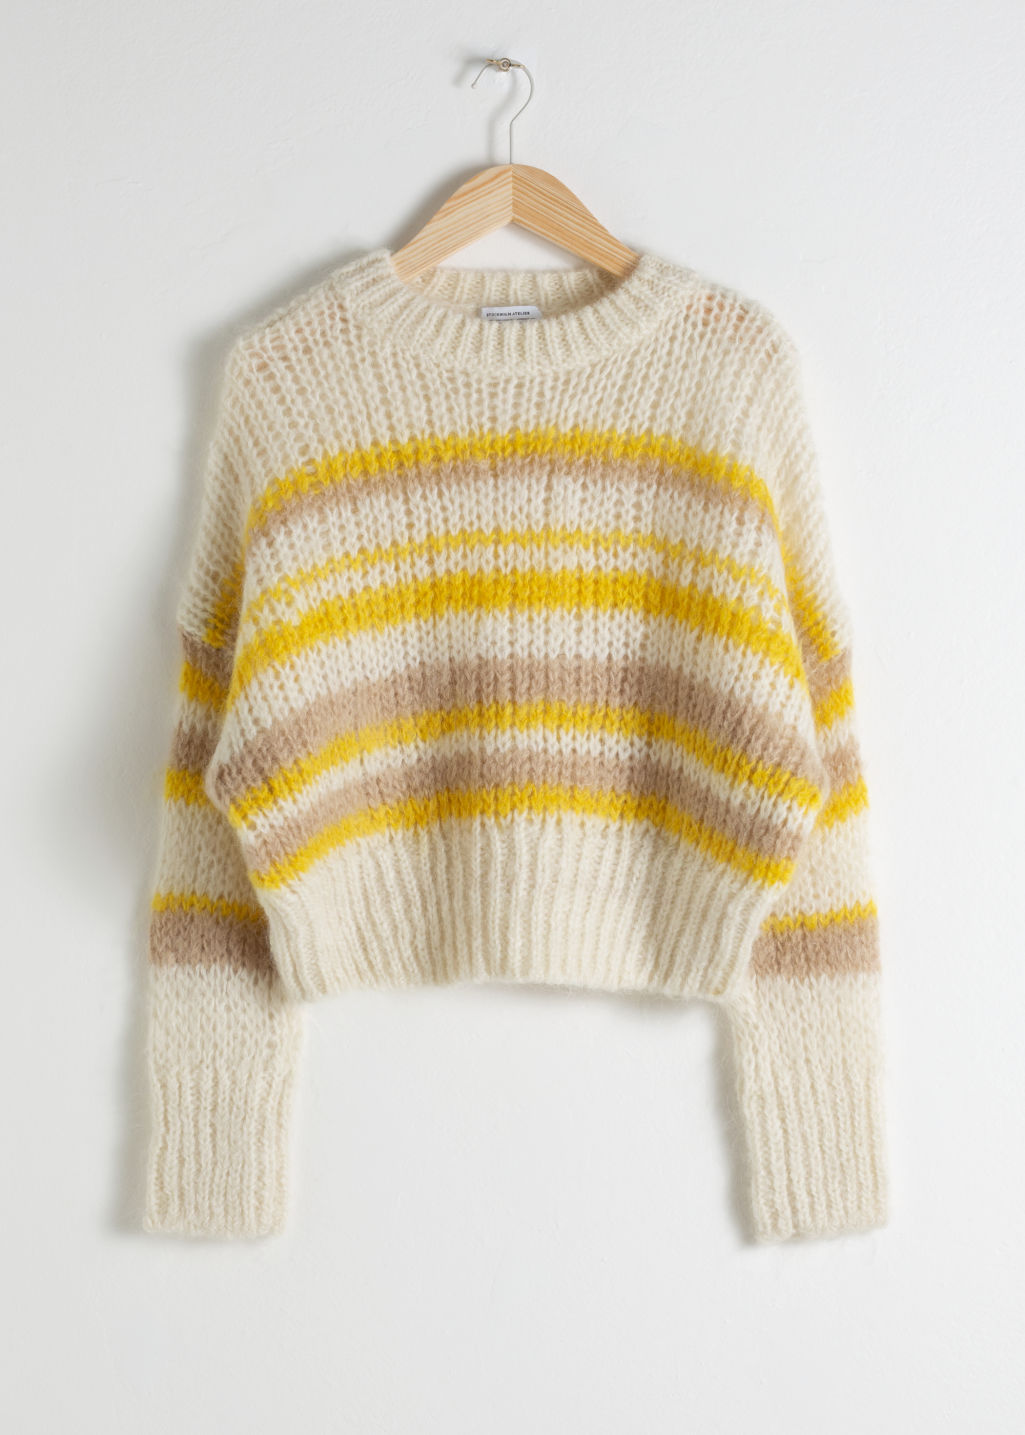 34edbb62defb15 Wool Blend Chunky Knit Sweater - Cream - Sweaters - & Other Stories